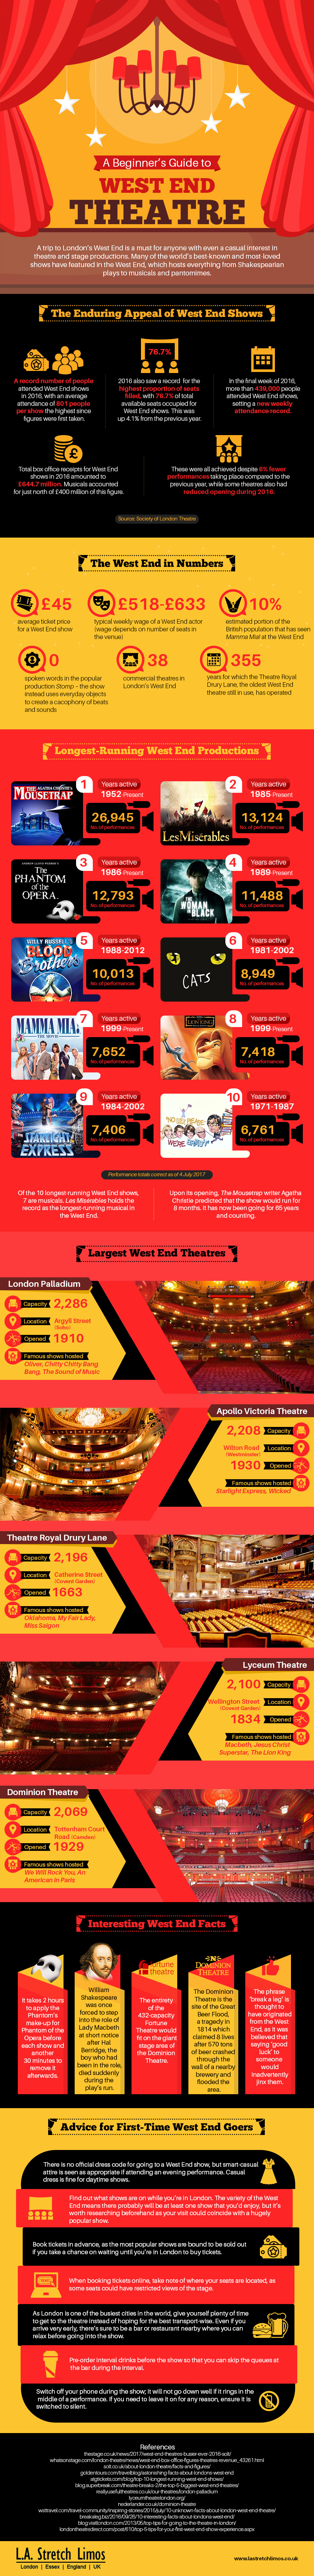 west end theatre guide